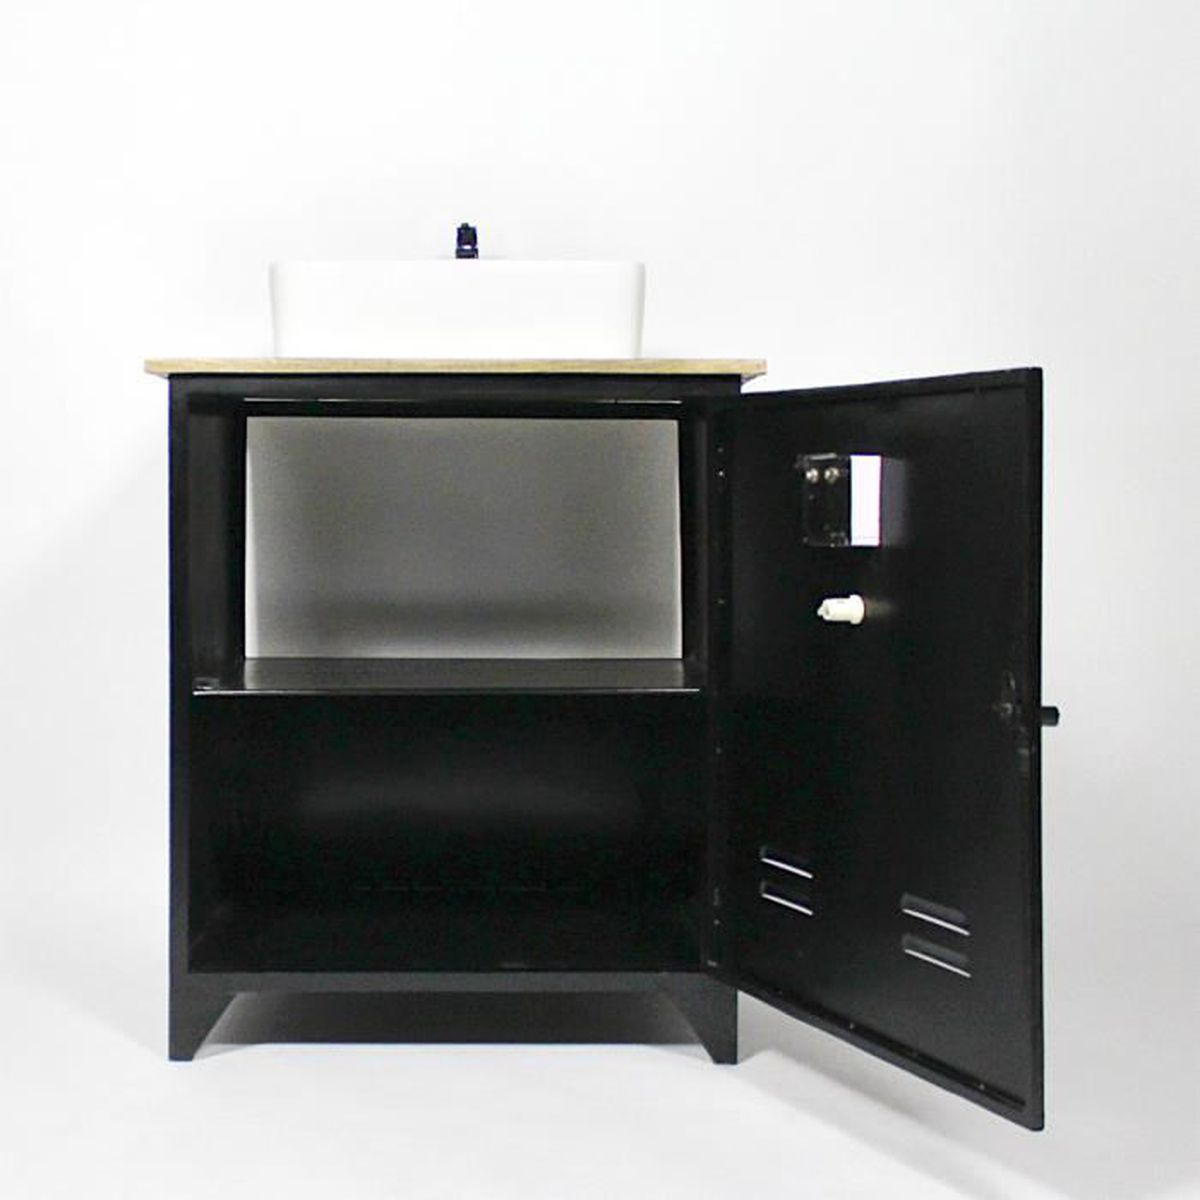 meuble salle de bain industriel 1 vasque style casier votl pas9 58 noir achat vente meuble. Black Bedroom Furniture Sets. Home Design Ideas